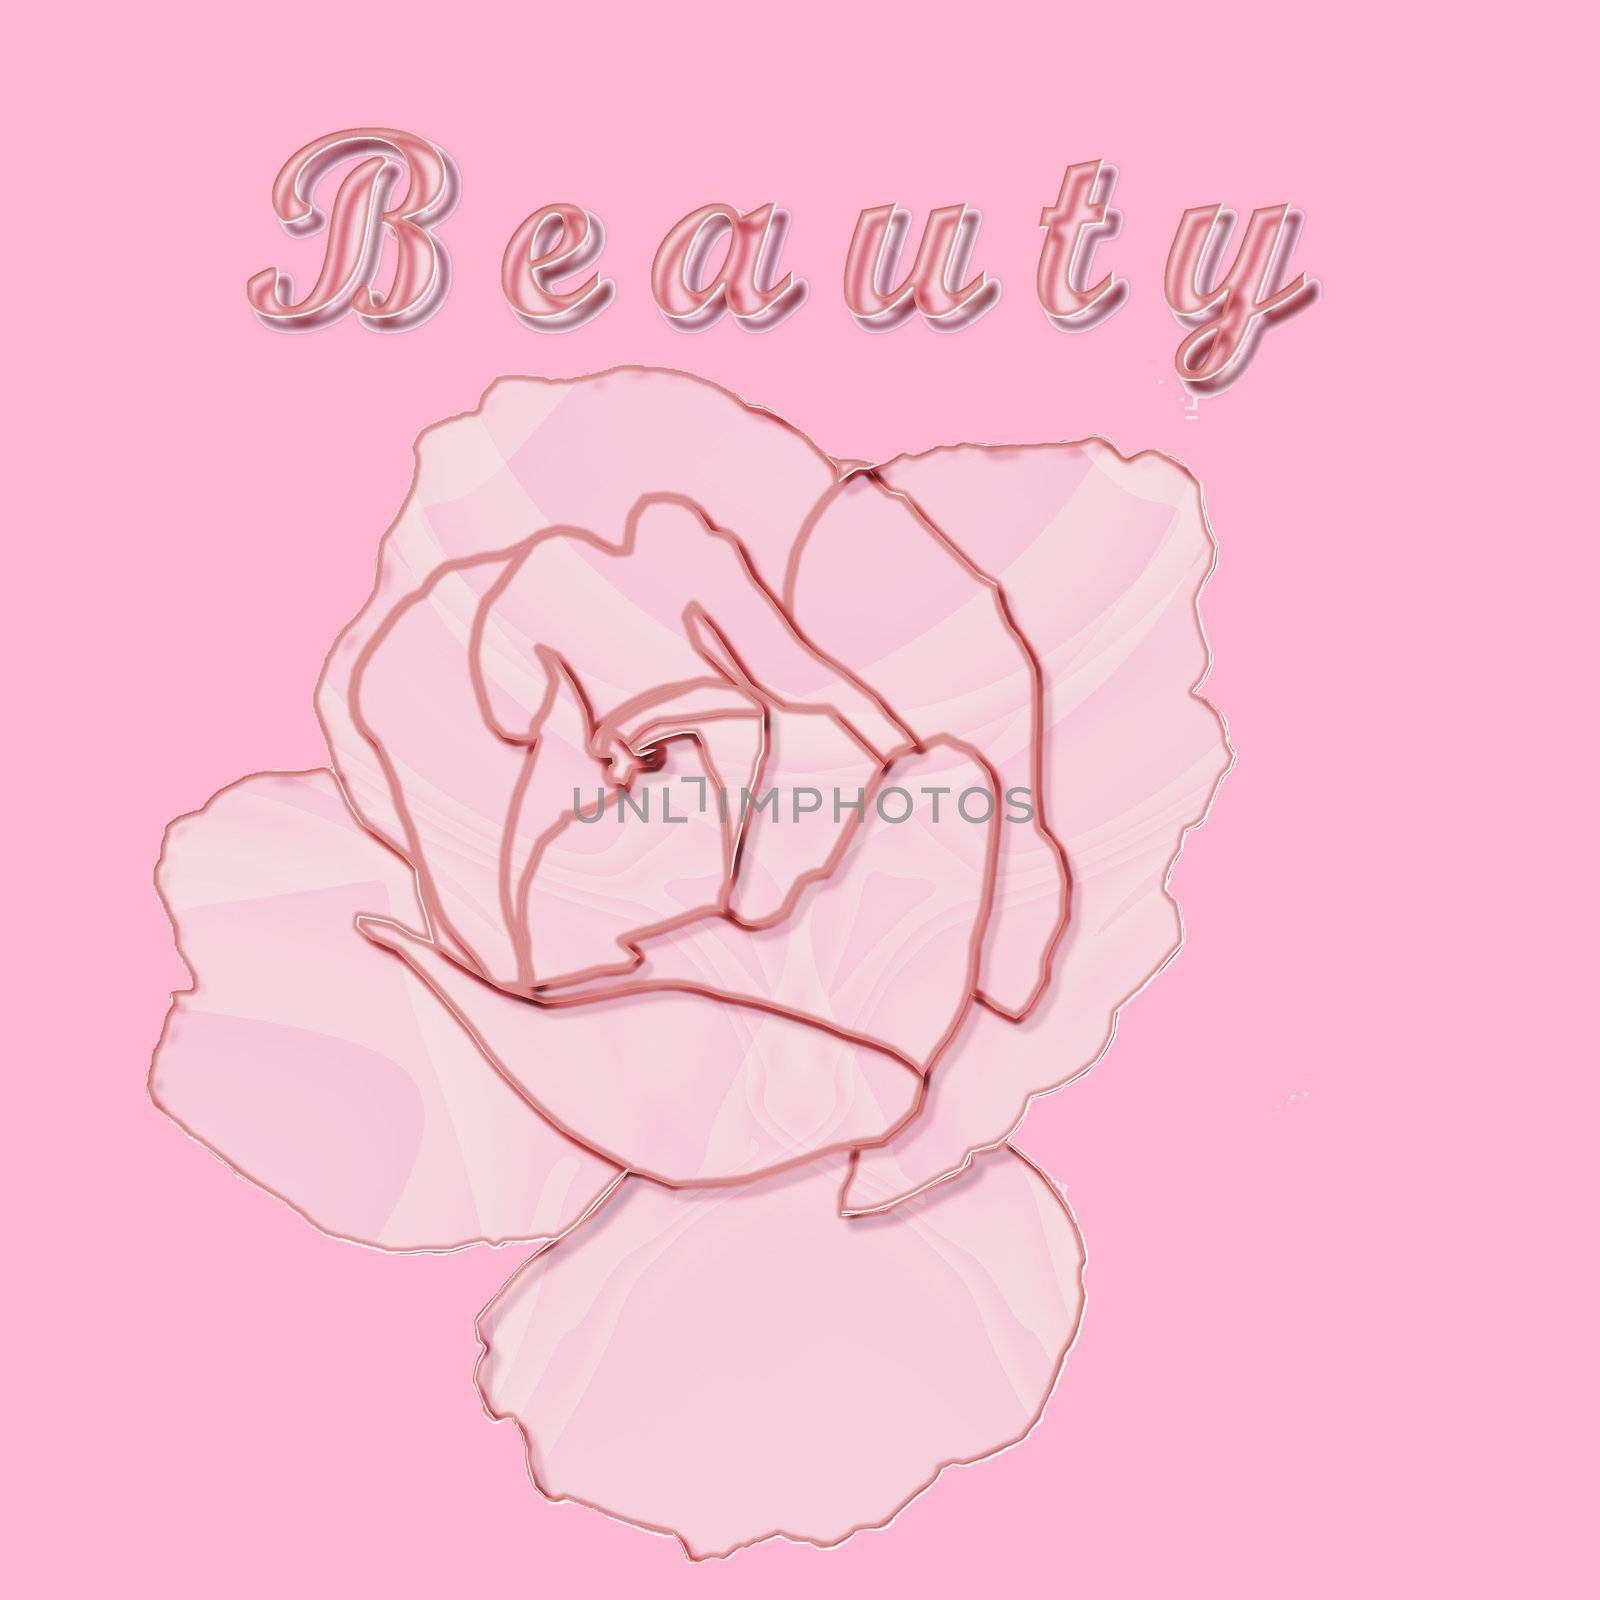 The concept of beauty illustrated by a glass rose on pink - a raster illustration.